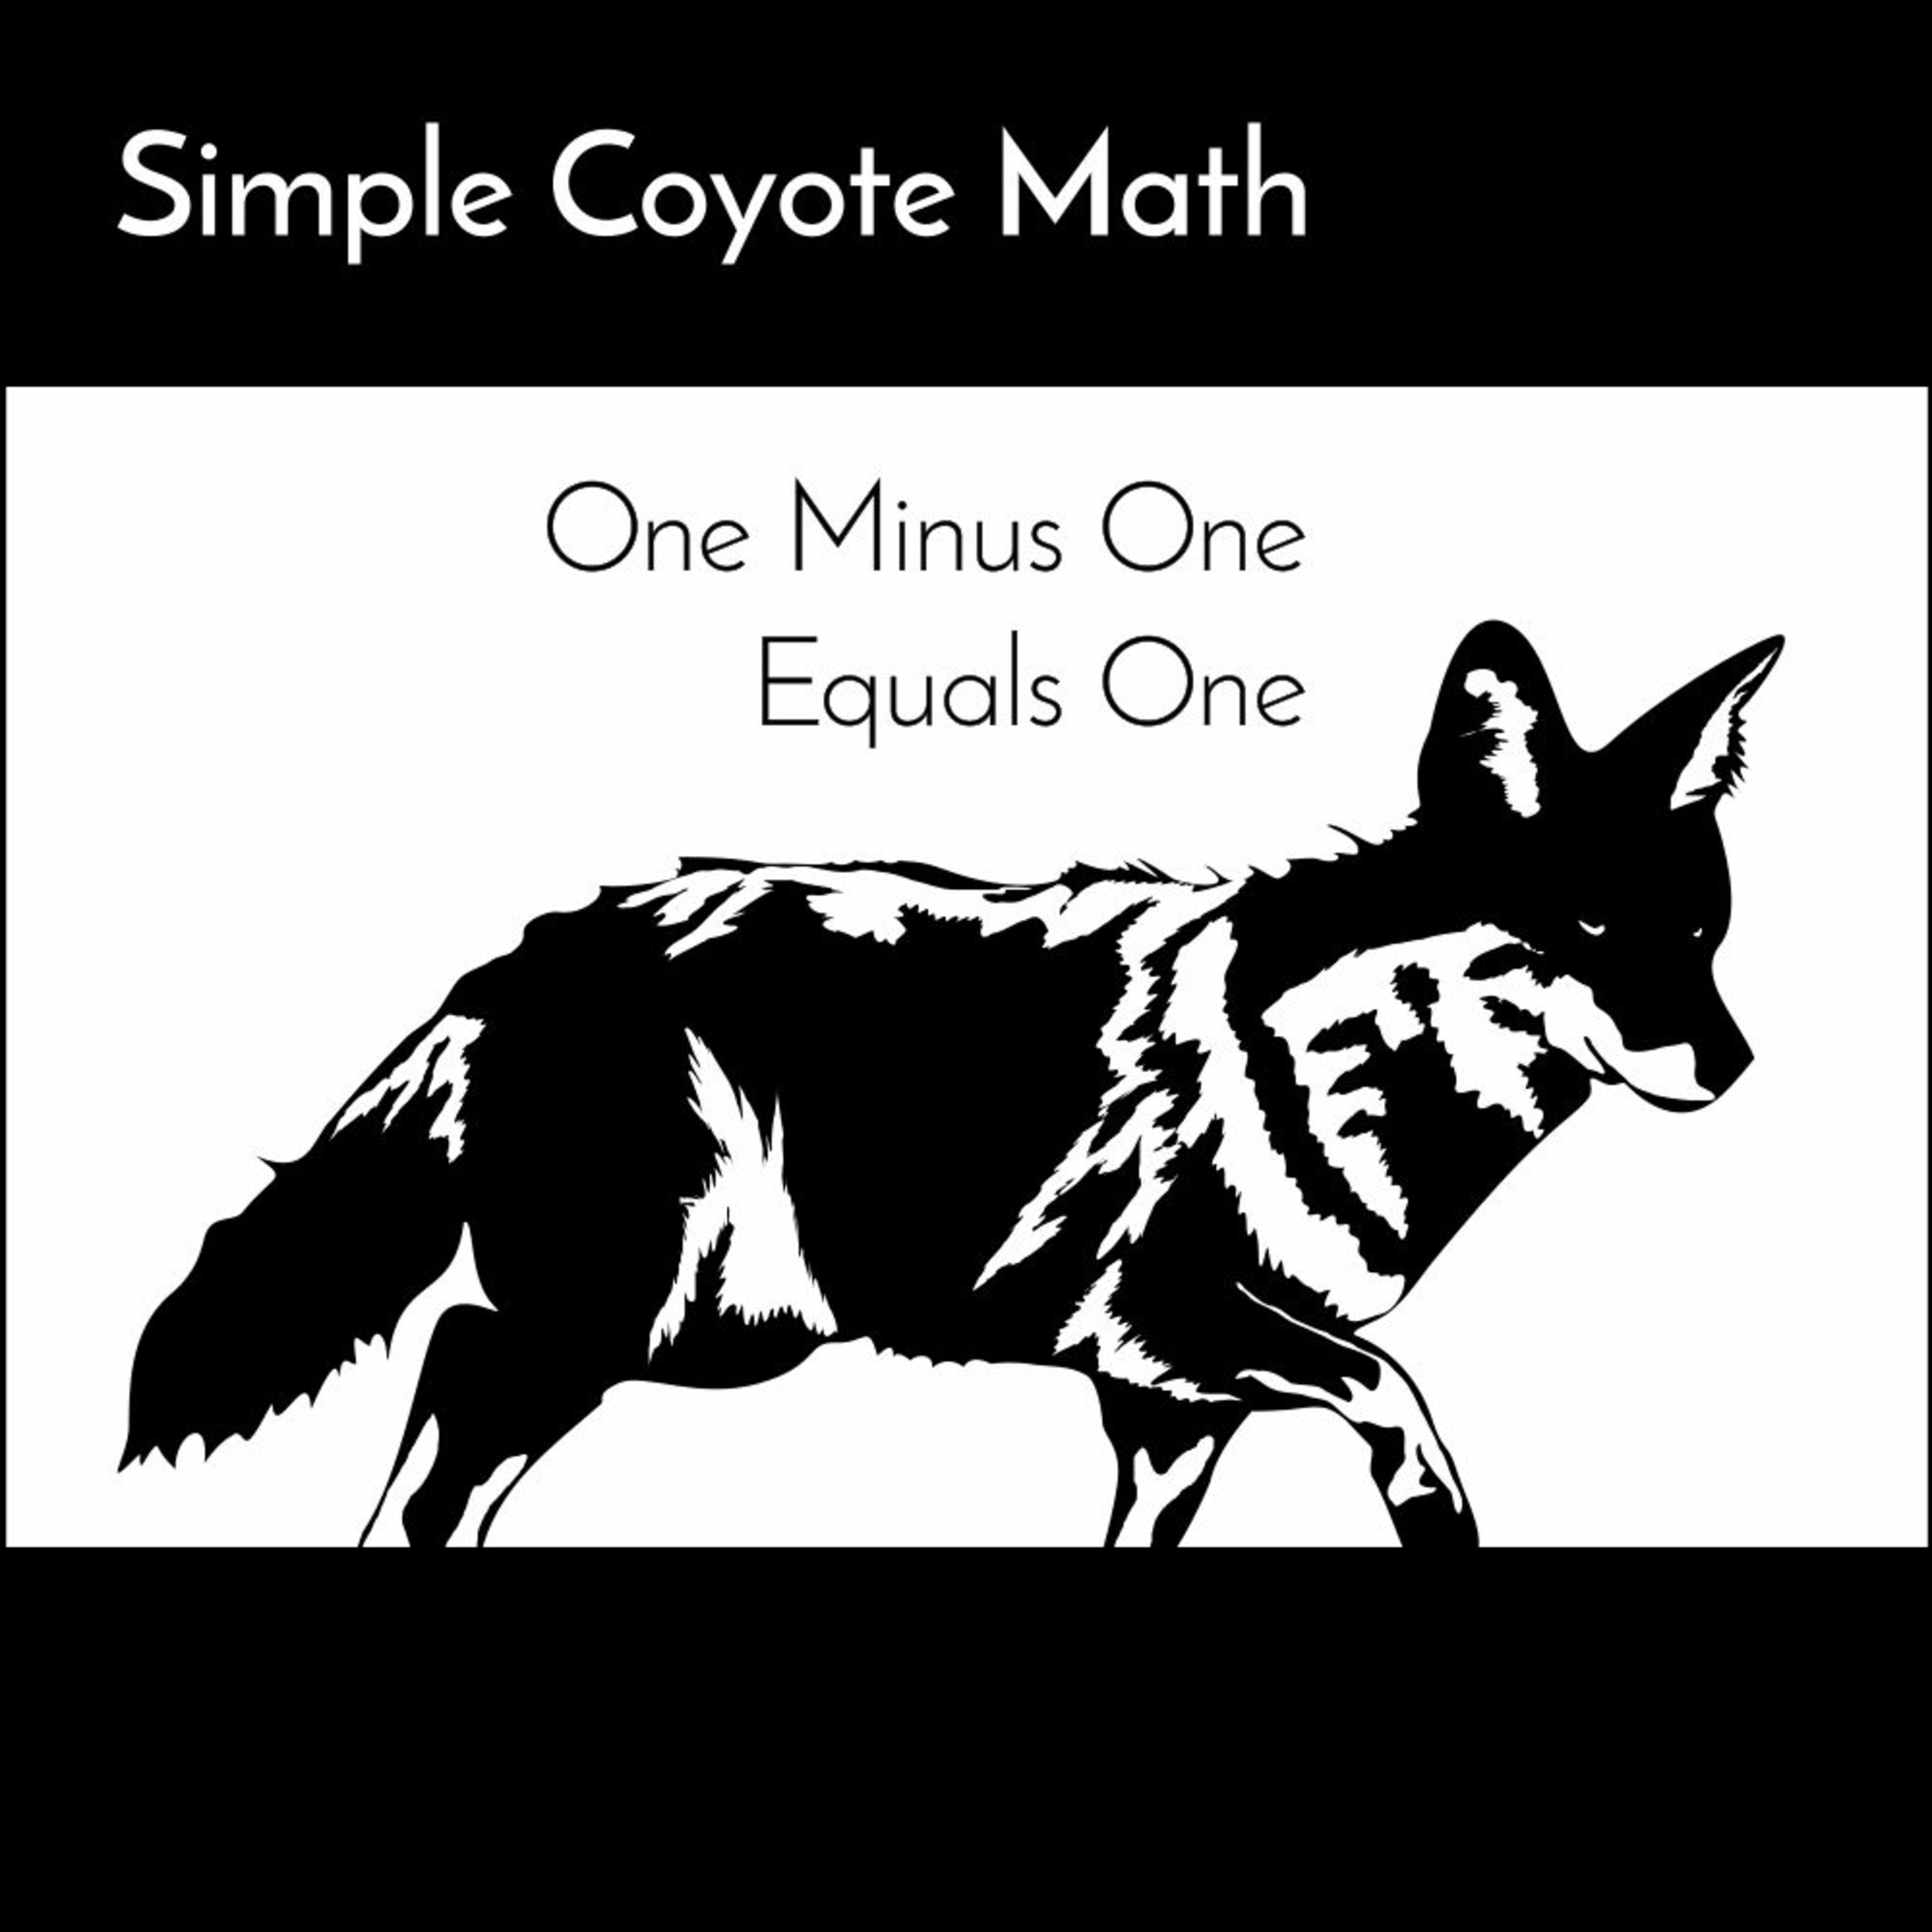 Simple Coyote Math, Part 1